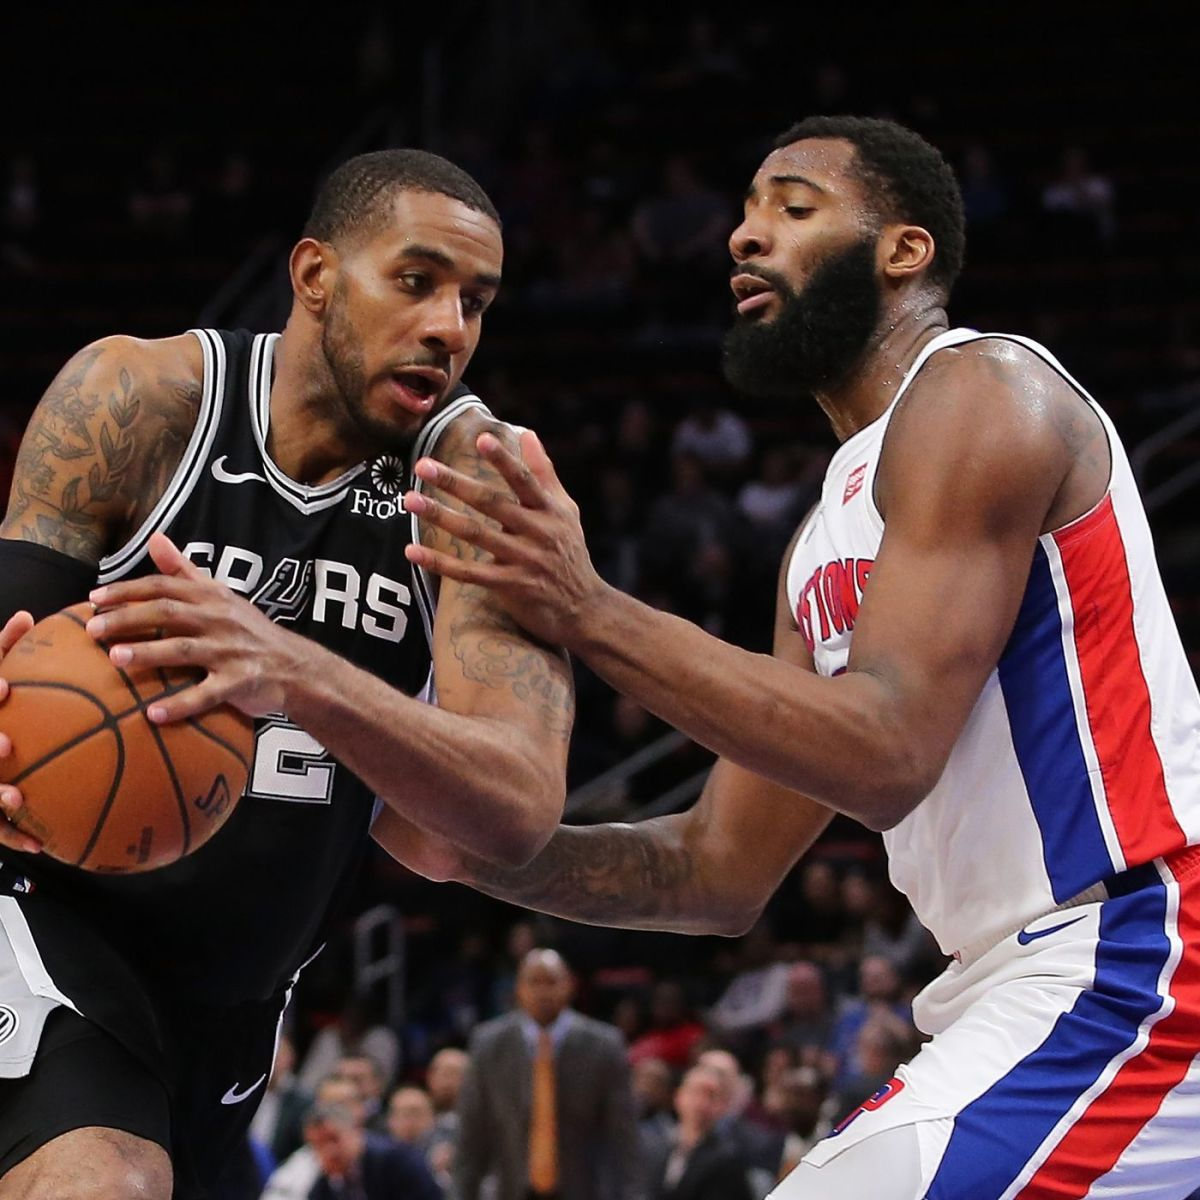 Cavs C Andre Drummond and Spurs F LaMarcus Aldridge have been bought out and are now in free agency.